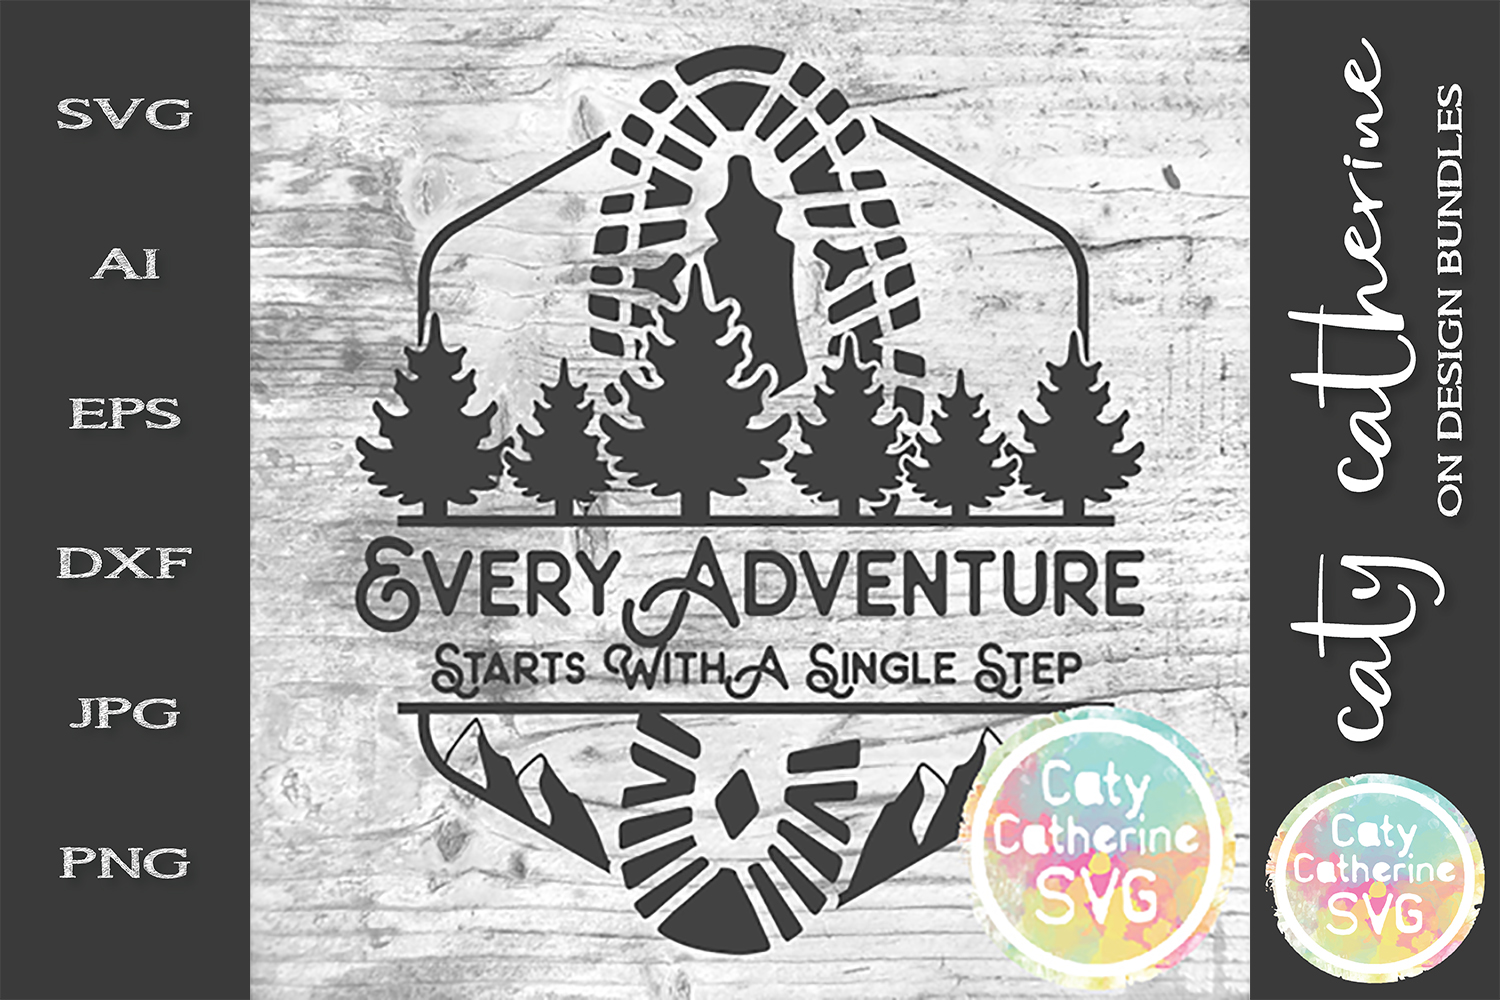 Every Adventure Starts With A Single Step SVG Cut File example image 1